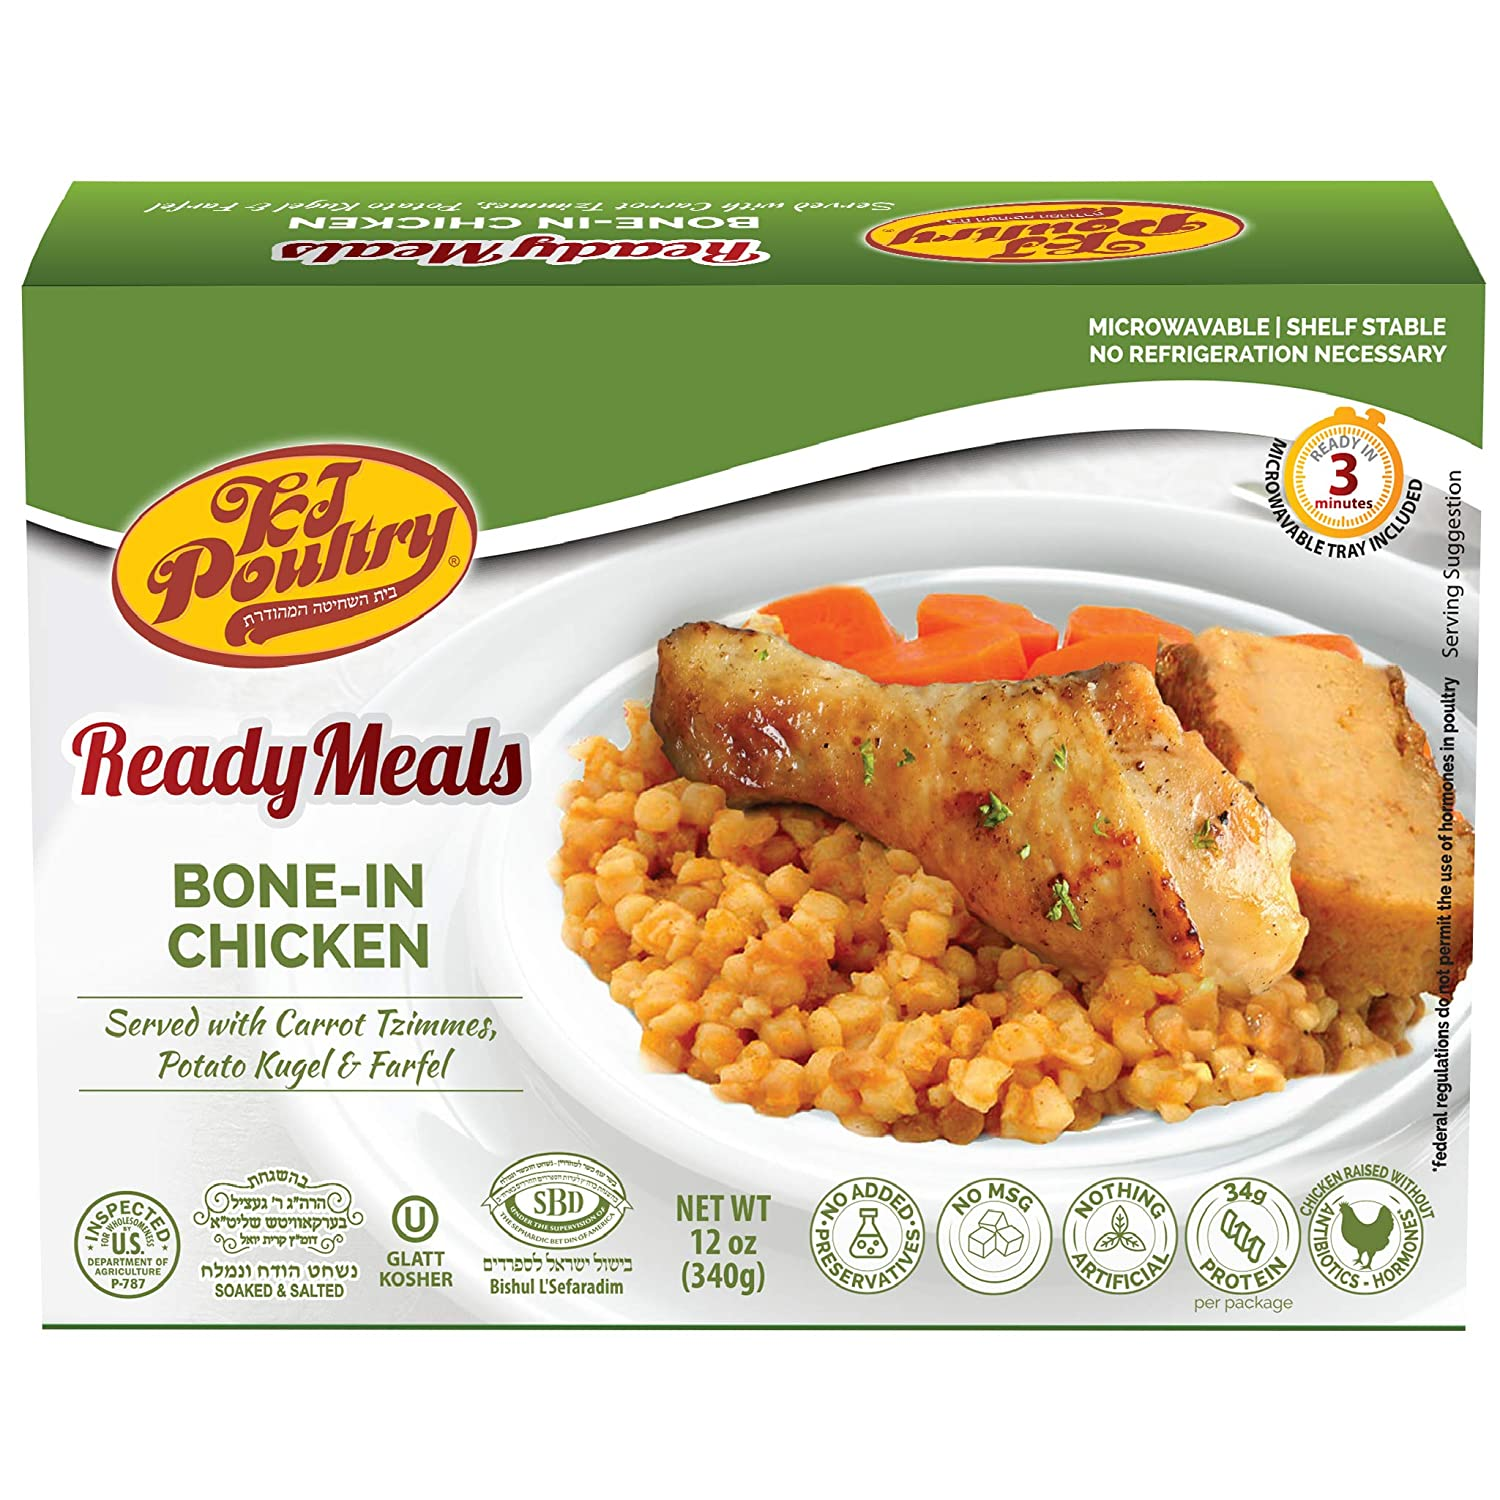 Kosher Mre Meat Meals Ready to Eat, Bone In Chicken & Kugel (1 Pack) - Prepared Entree Fully Cooked, Shelf Stable Microwave Dinner, Deliverd Home – Travel, Military, Camping, Emergency Survival Food